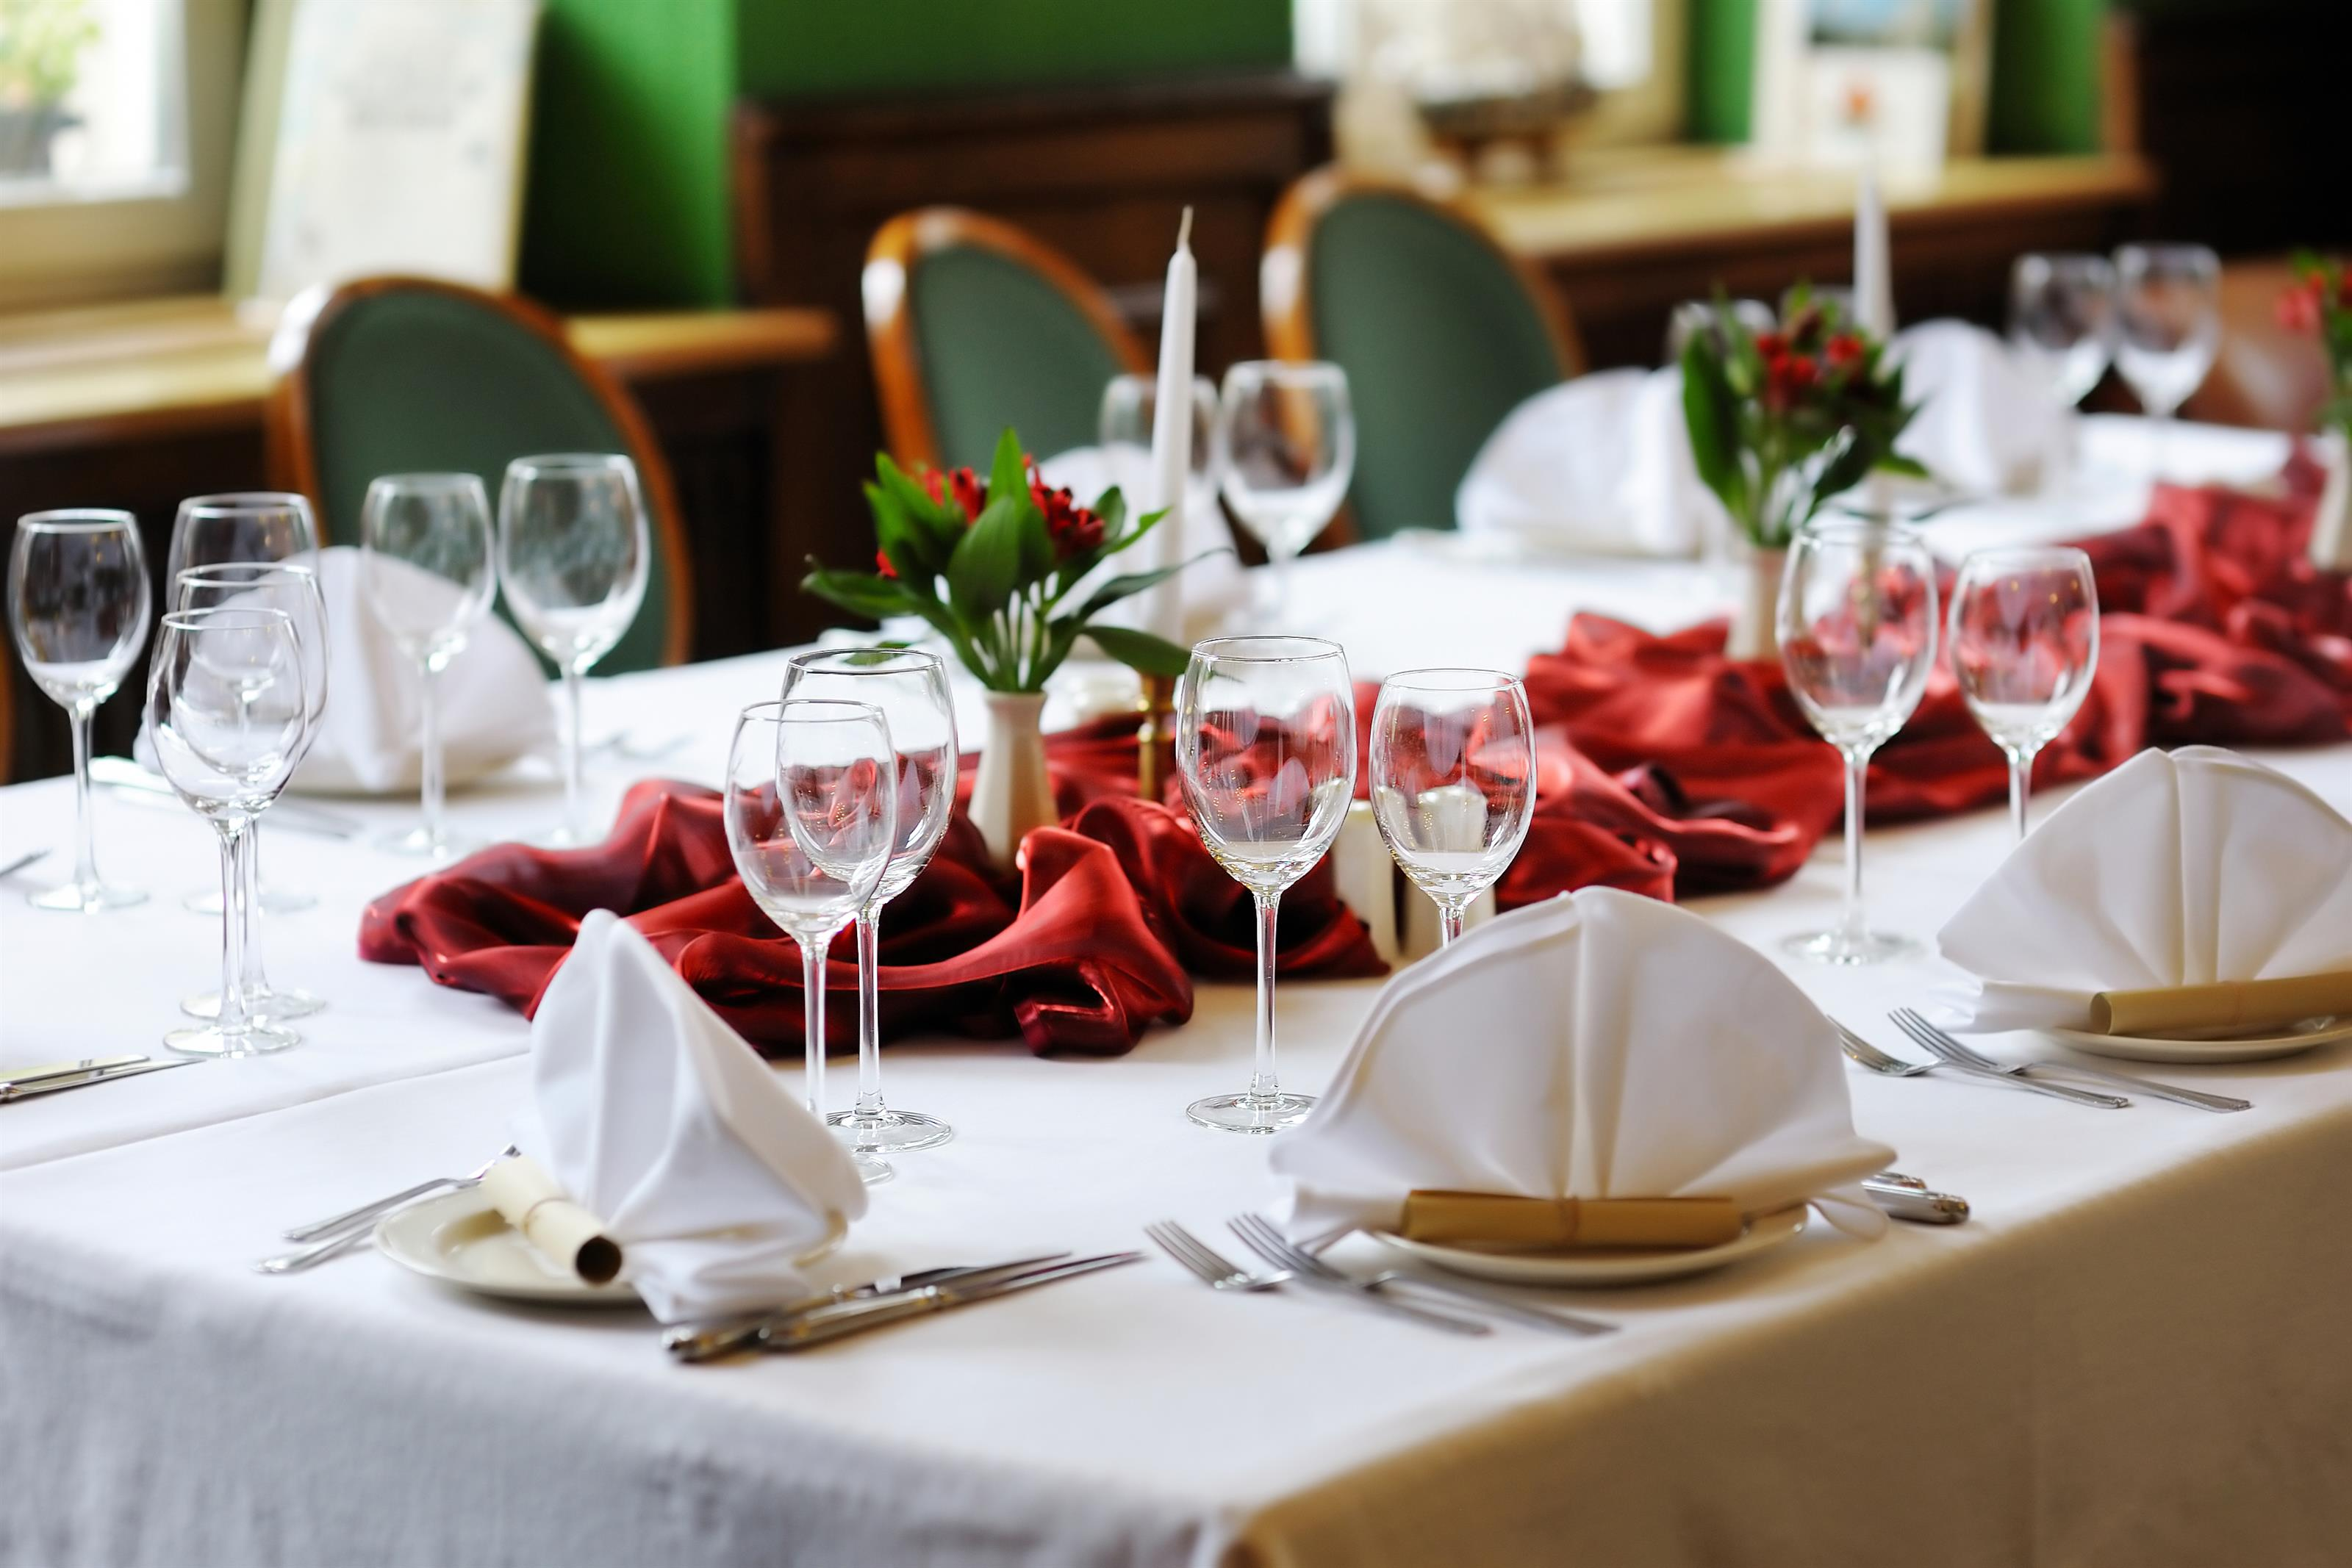 Formal table setting with green and red decorative details